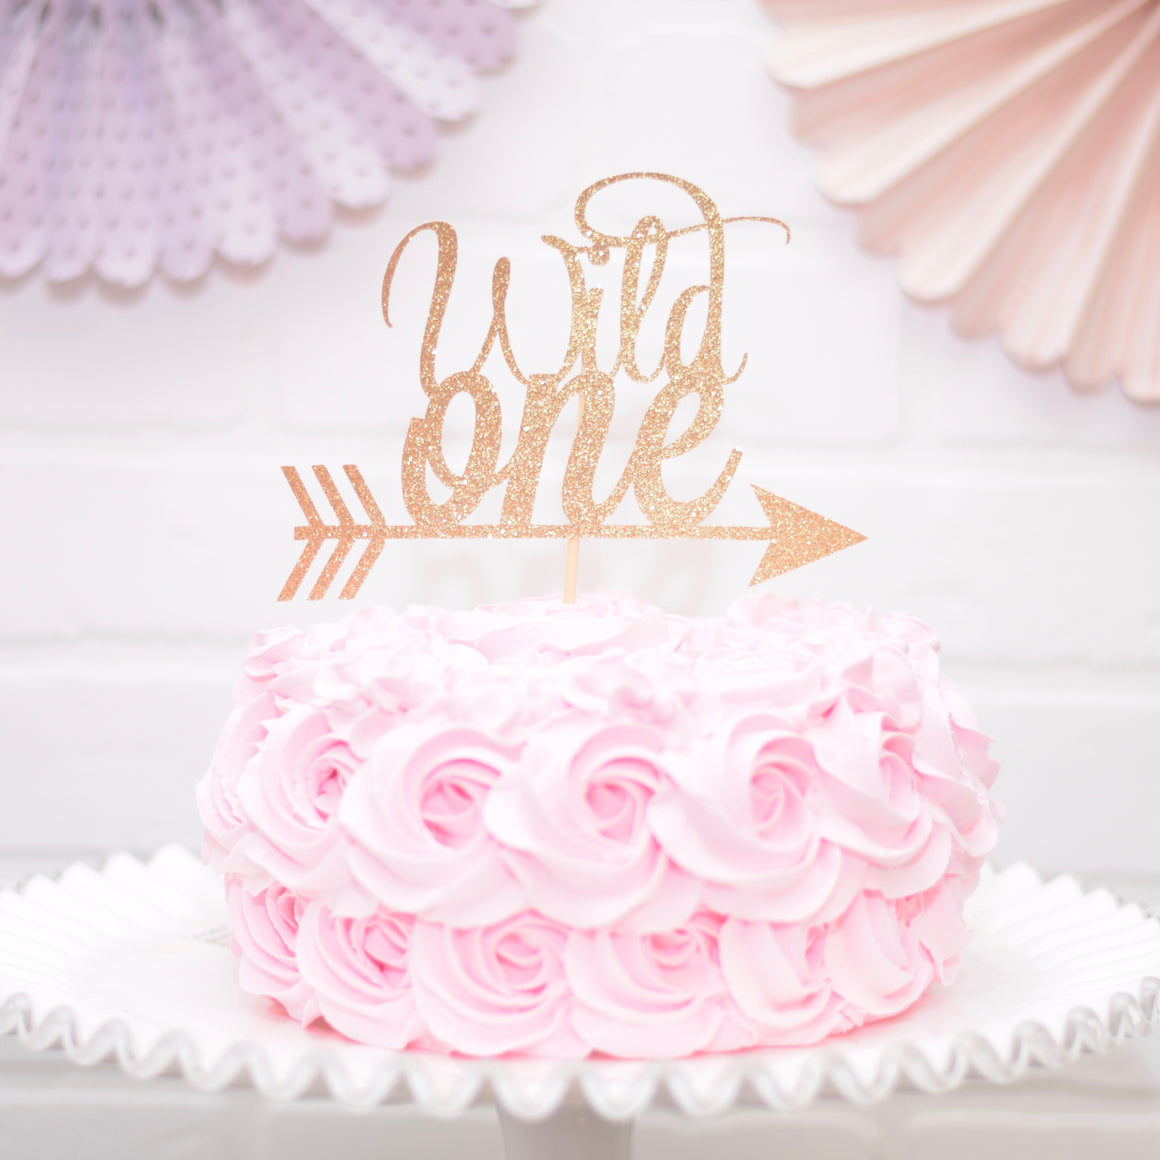 Gold wild one cake topper on pink rosette cake